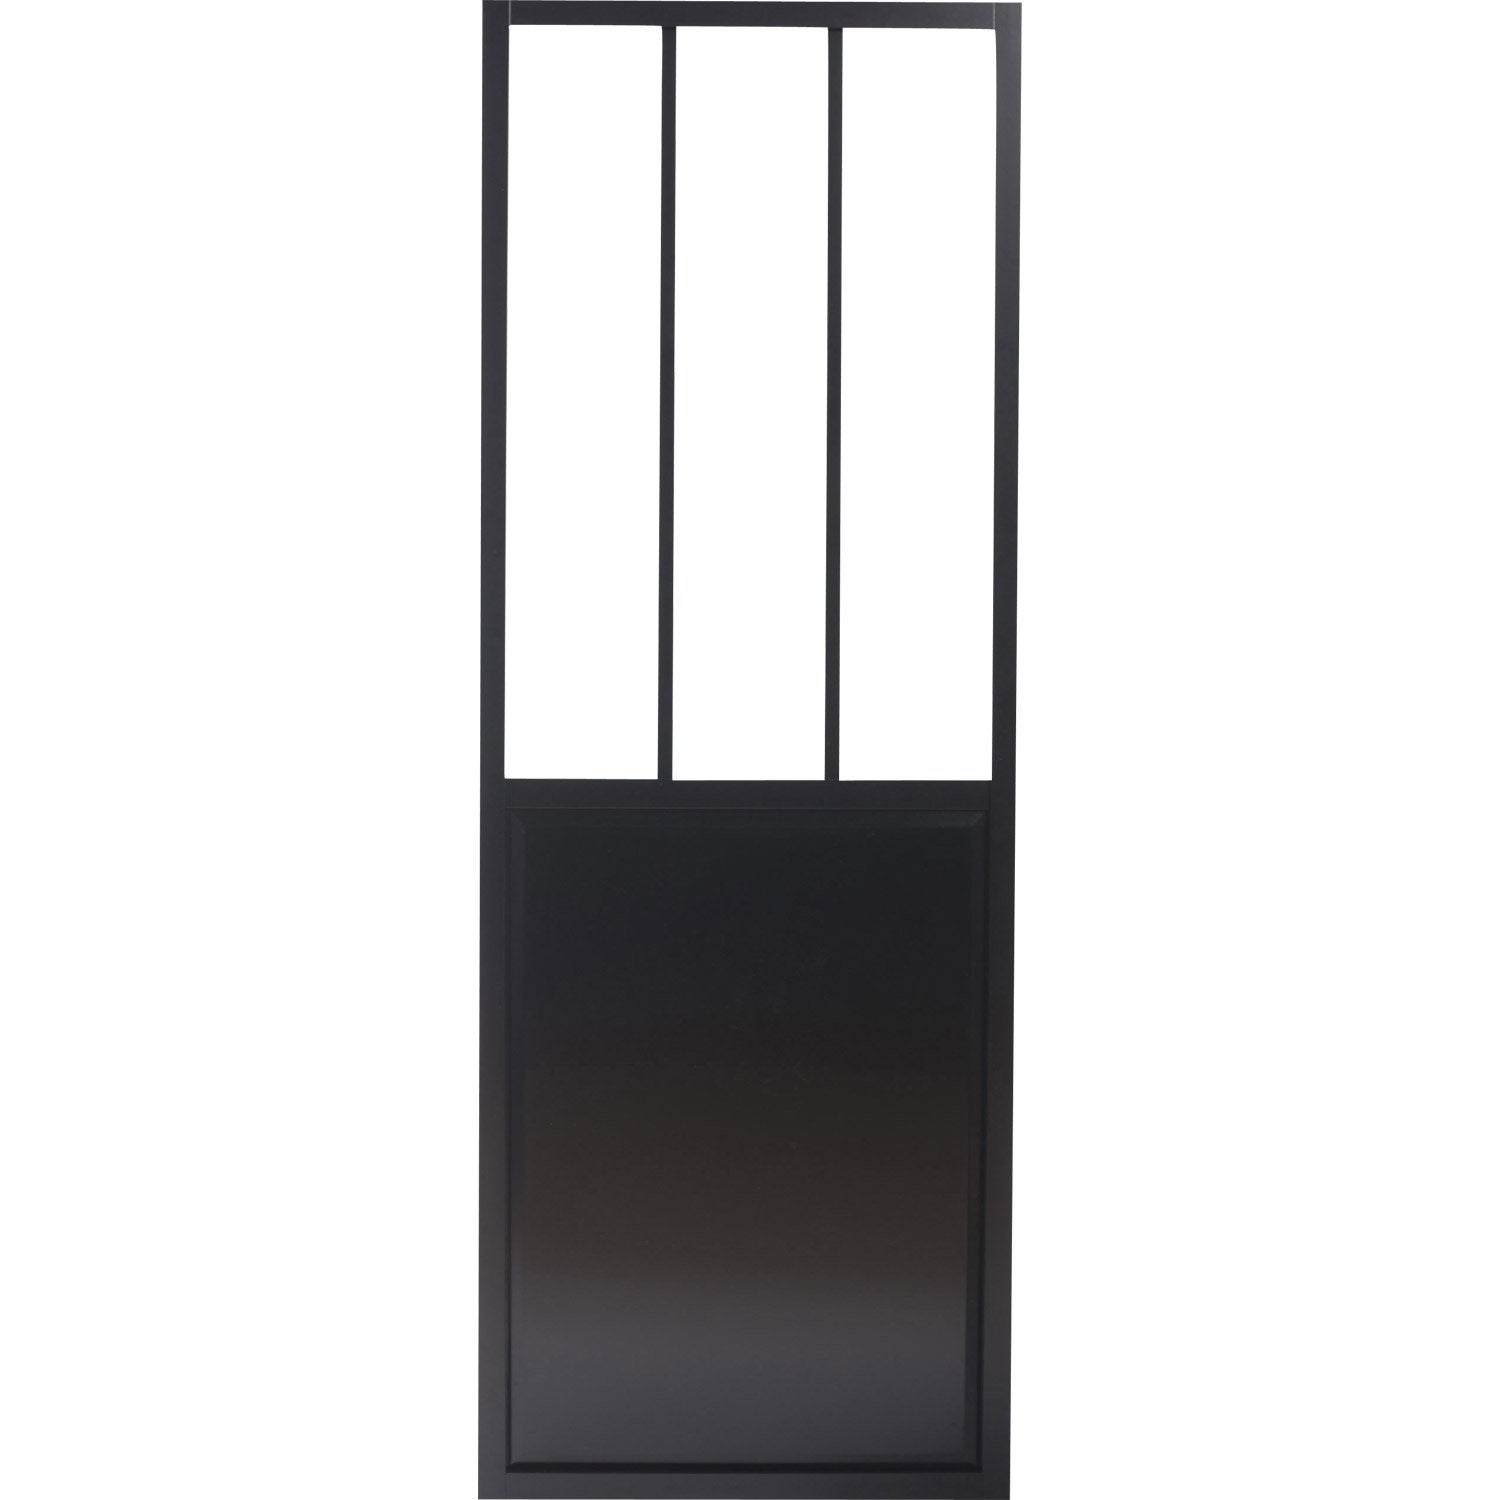 Porte coulissante aluminium noir fonc verre tremp for Leroy merlin porte interieur